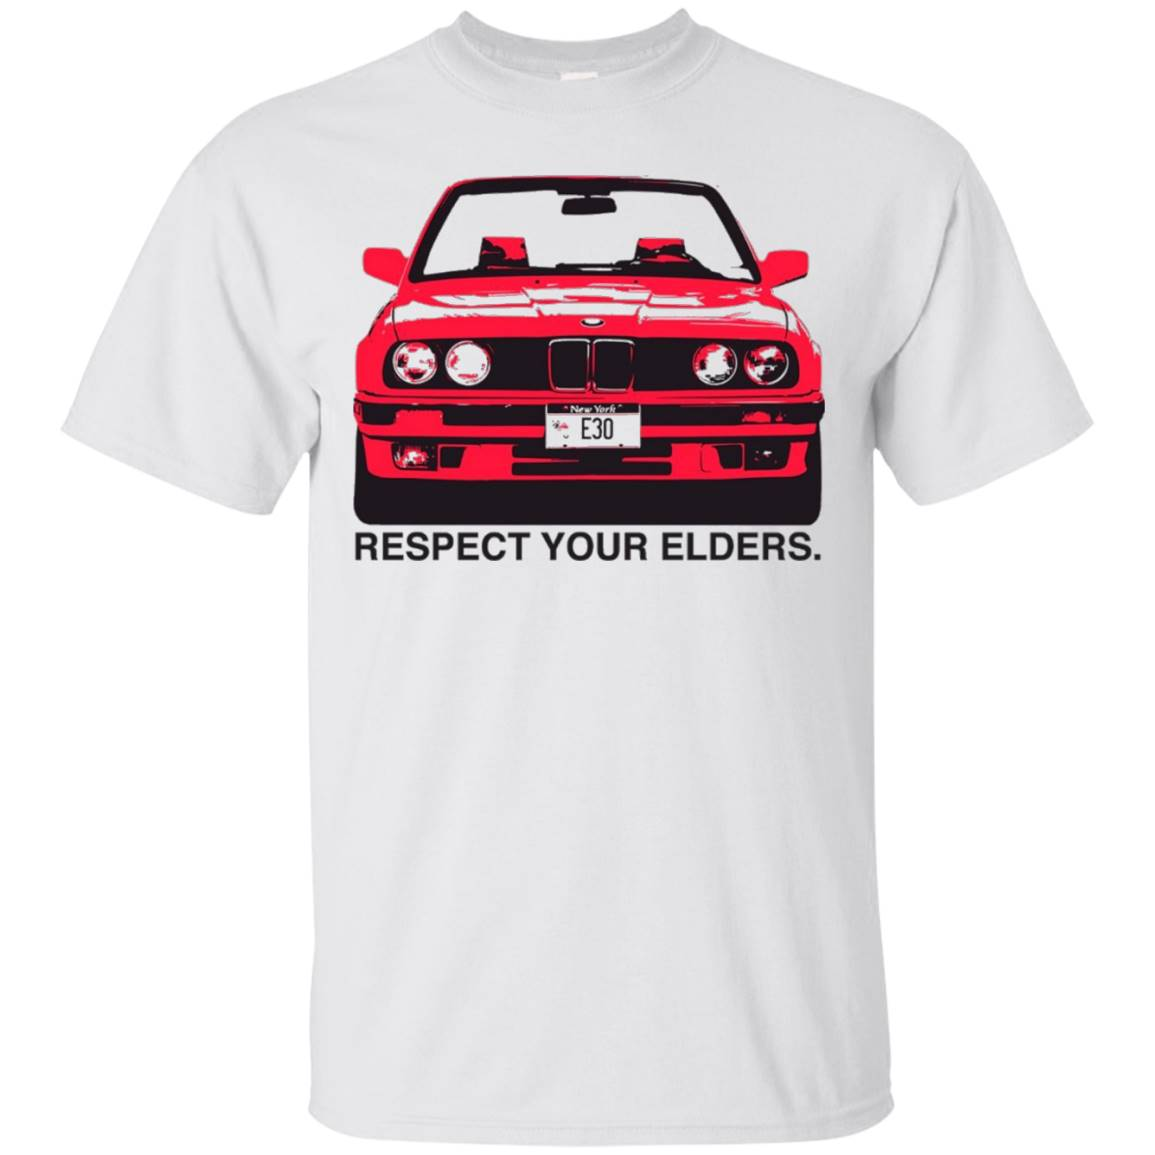 Respect Your Elders E30 T-Shirt Vintage Auto Car Enthusiast